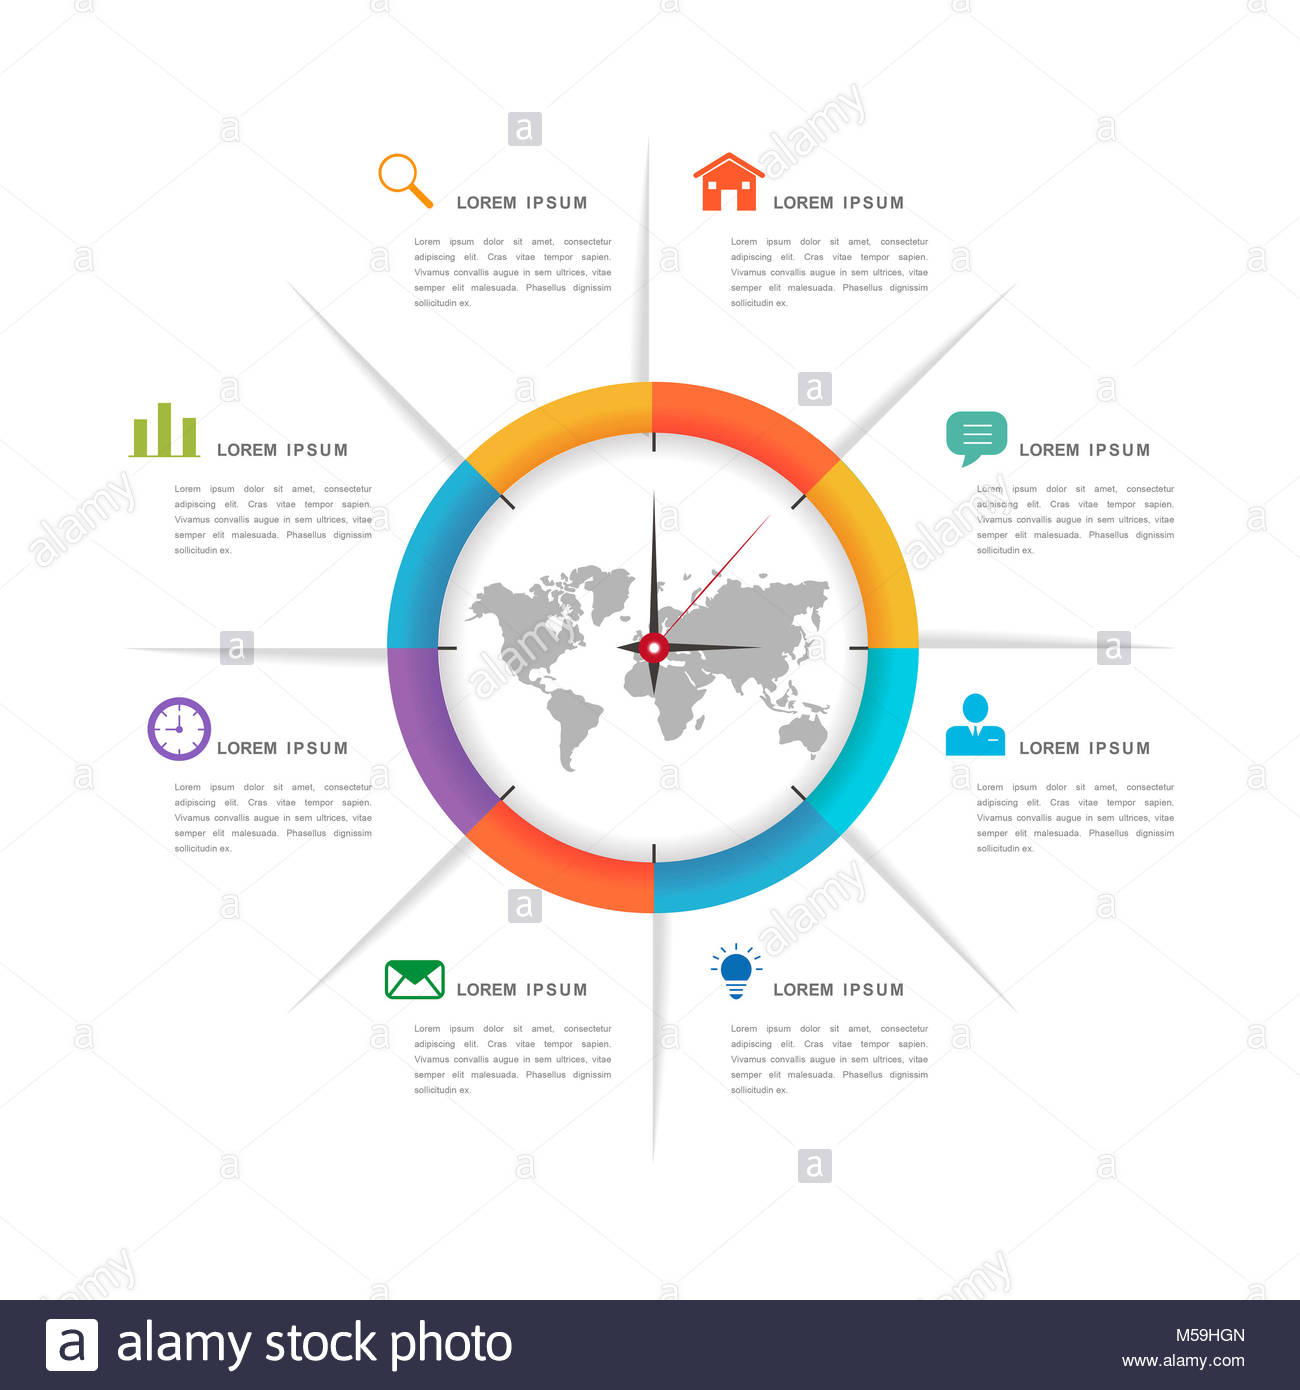 Simplicity infographic design with pie chart elements stock photo simplicity infographic design with pie chart elements nvjuhfo Choice Image